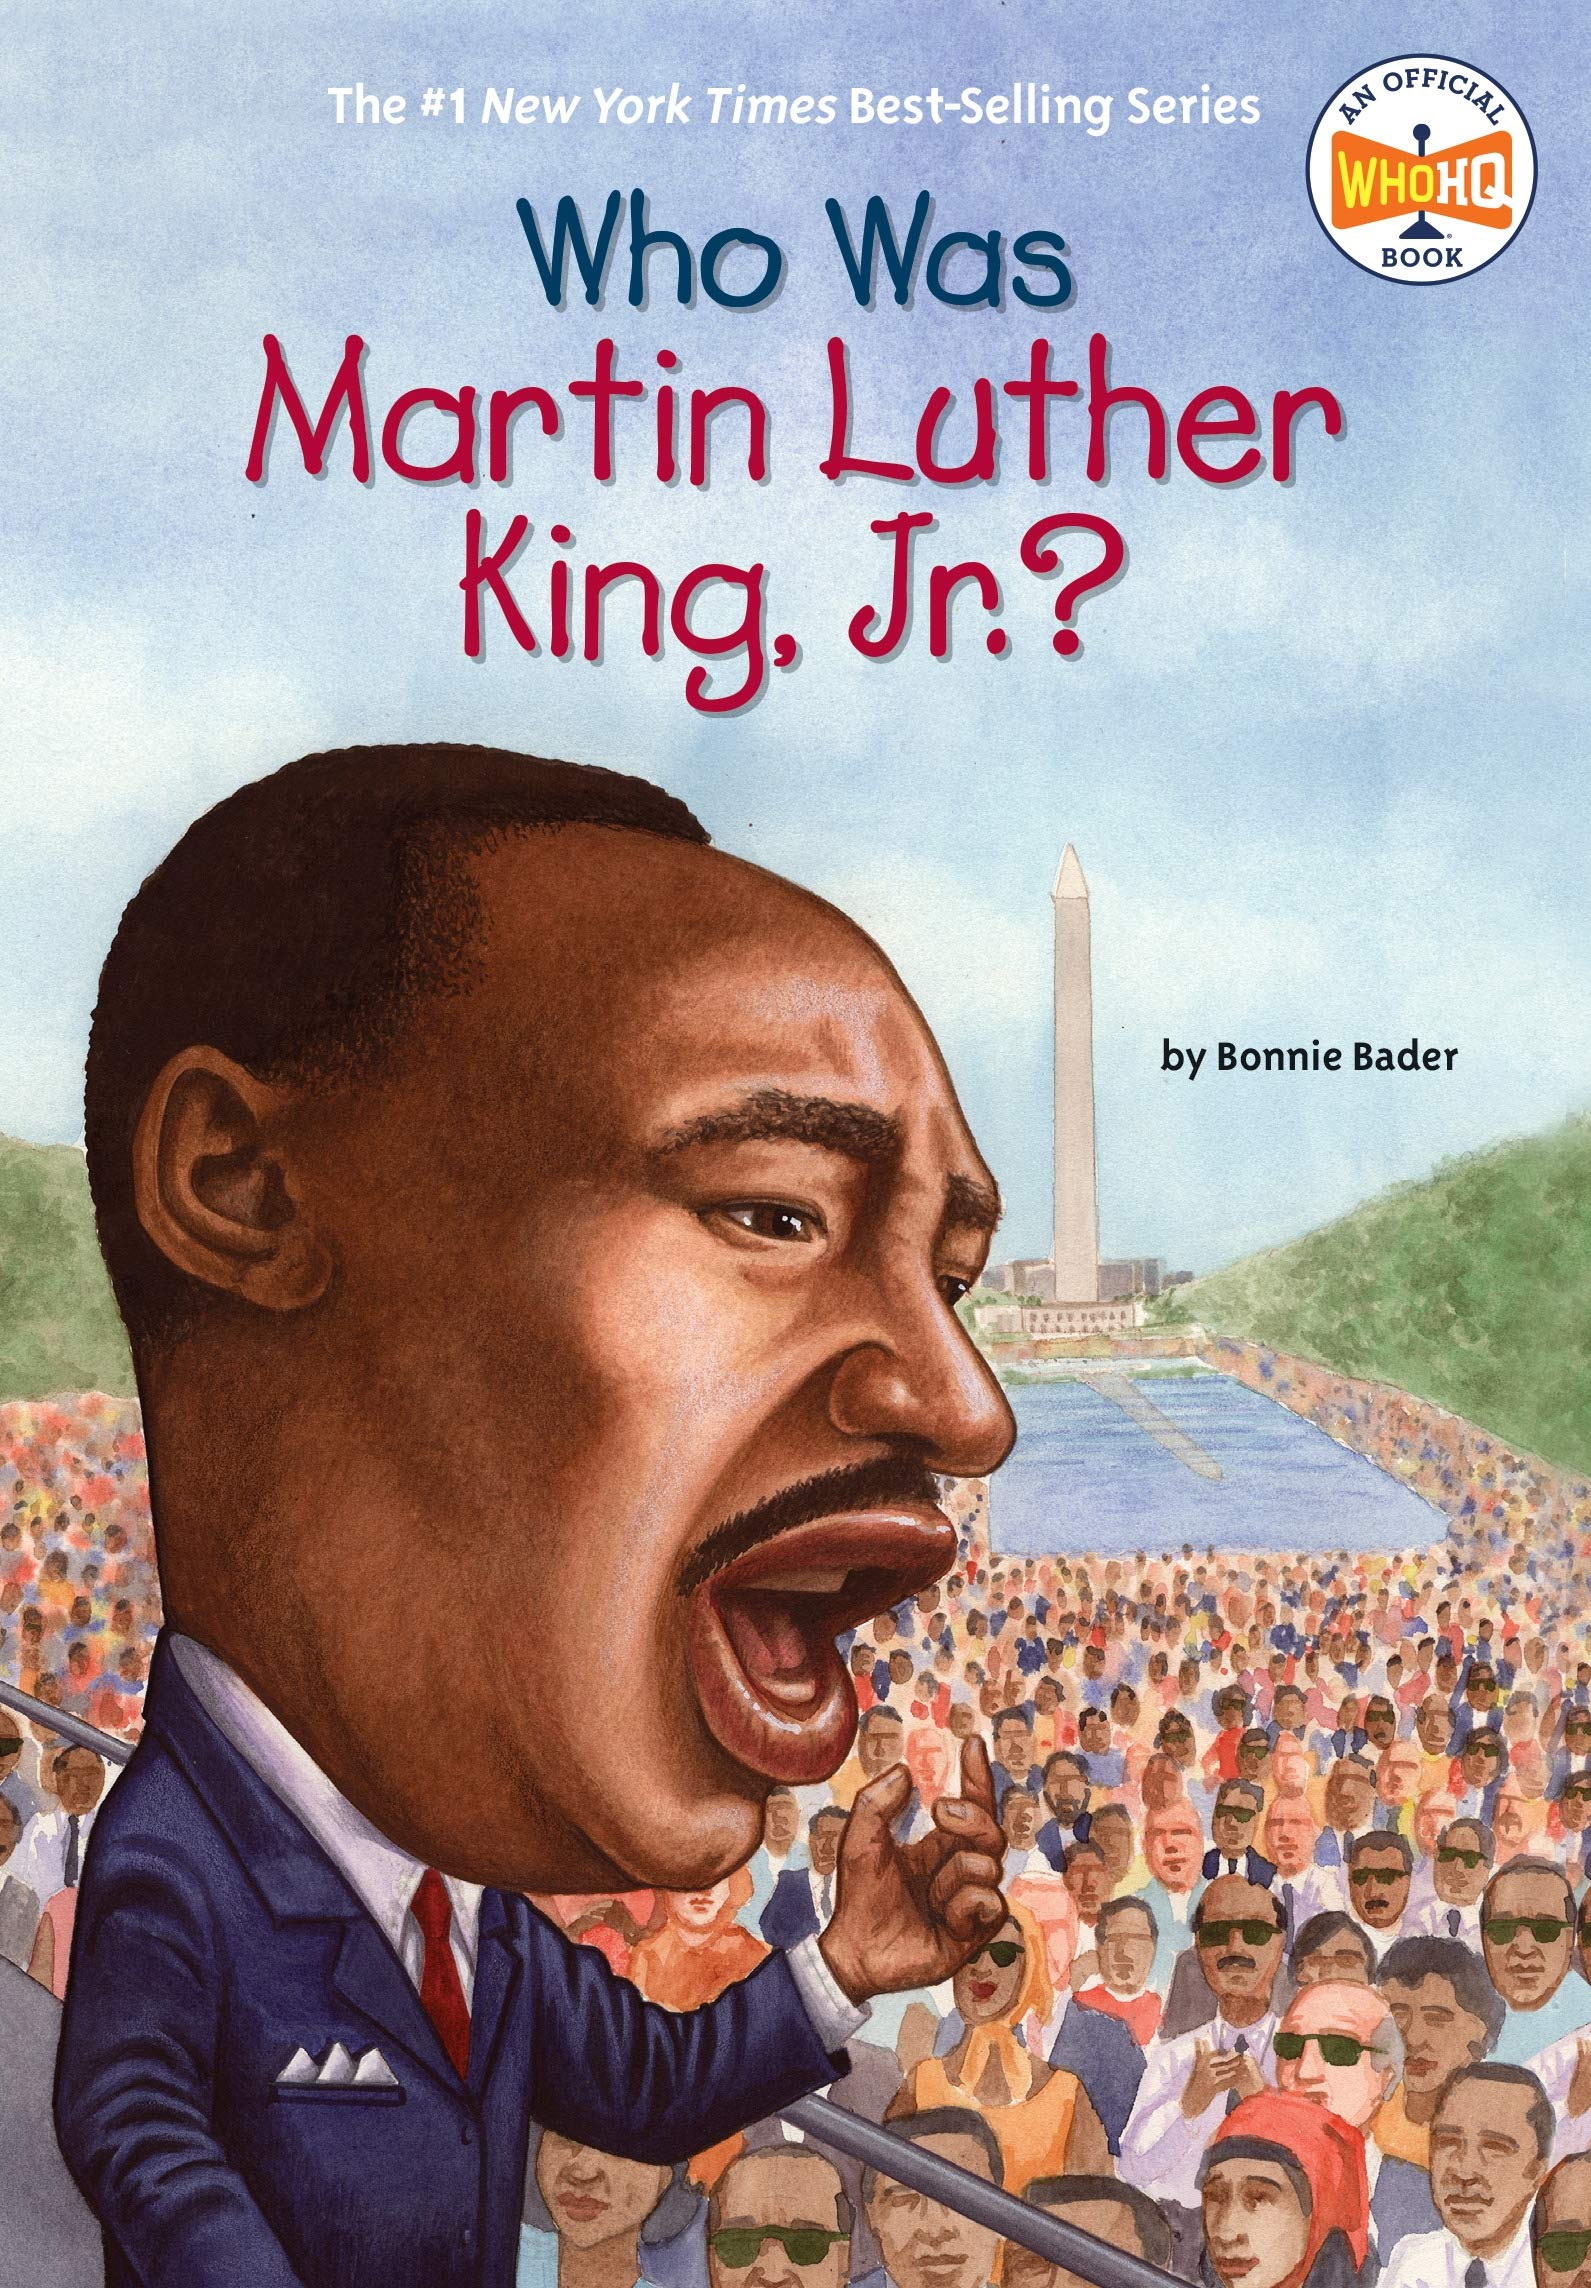 Who Was Martin Luther King Jr.? (Who HQ)